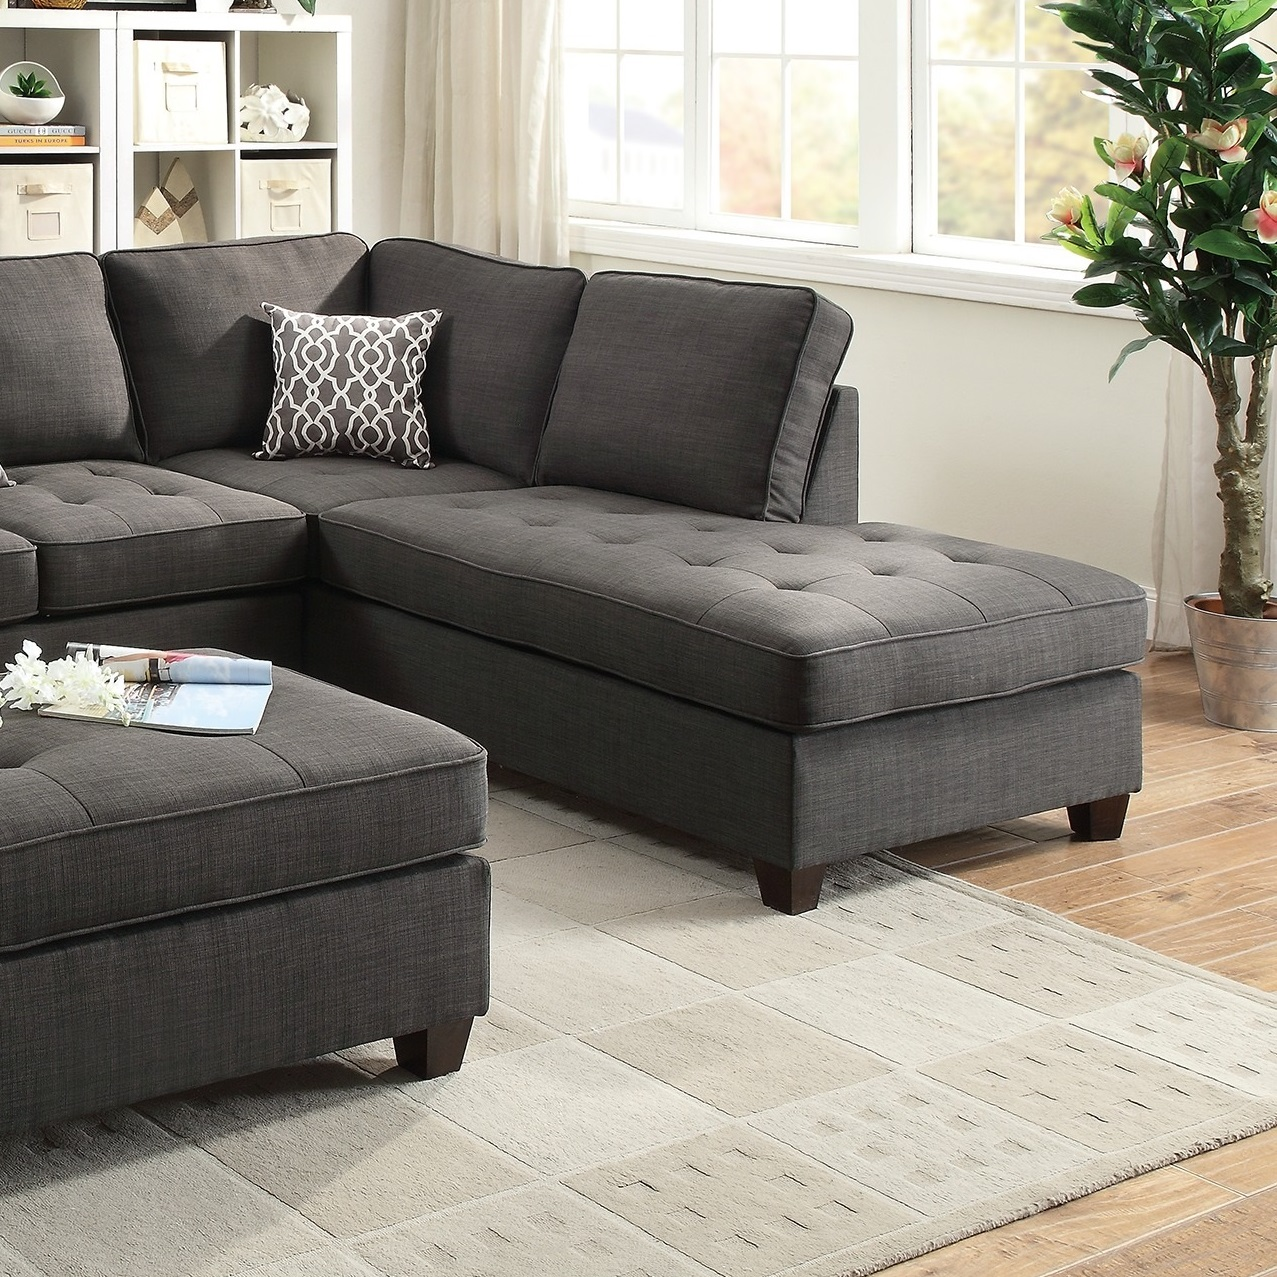 Contemporary Sectional: Black Sectional Sofa Chaise Poundex #F6988